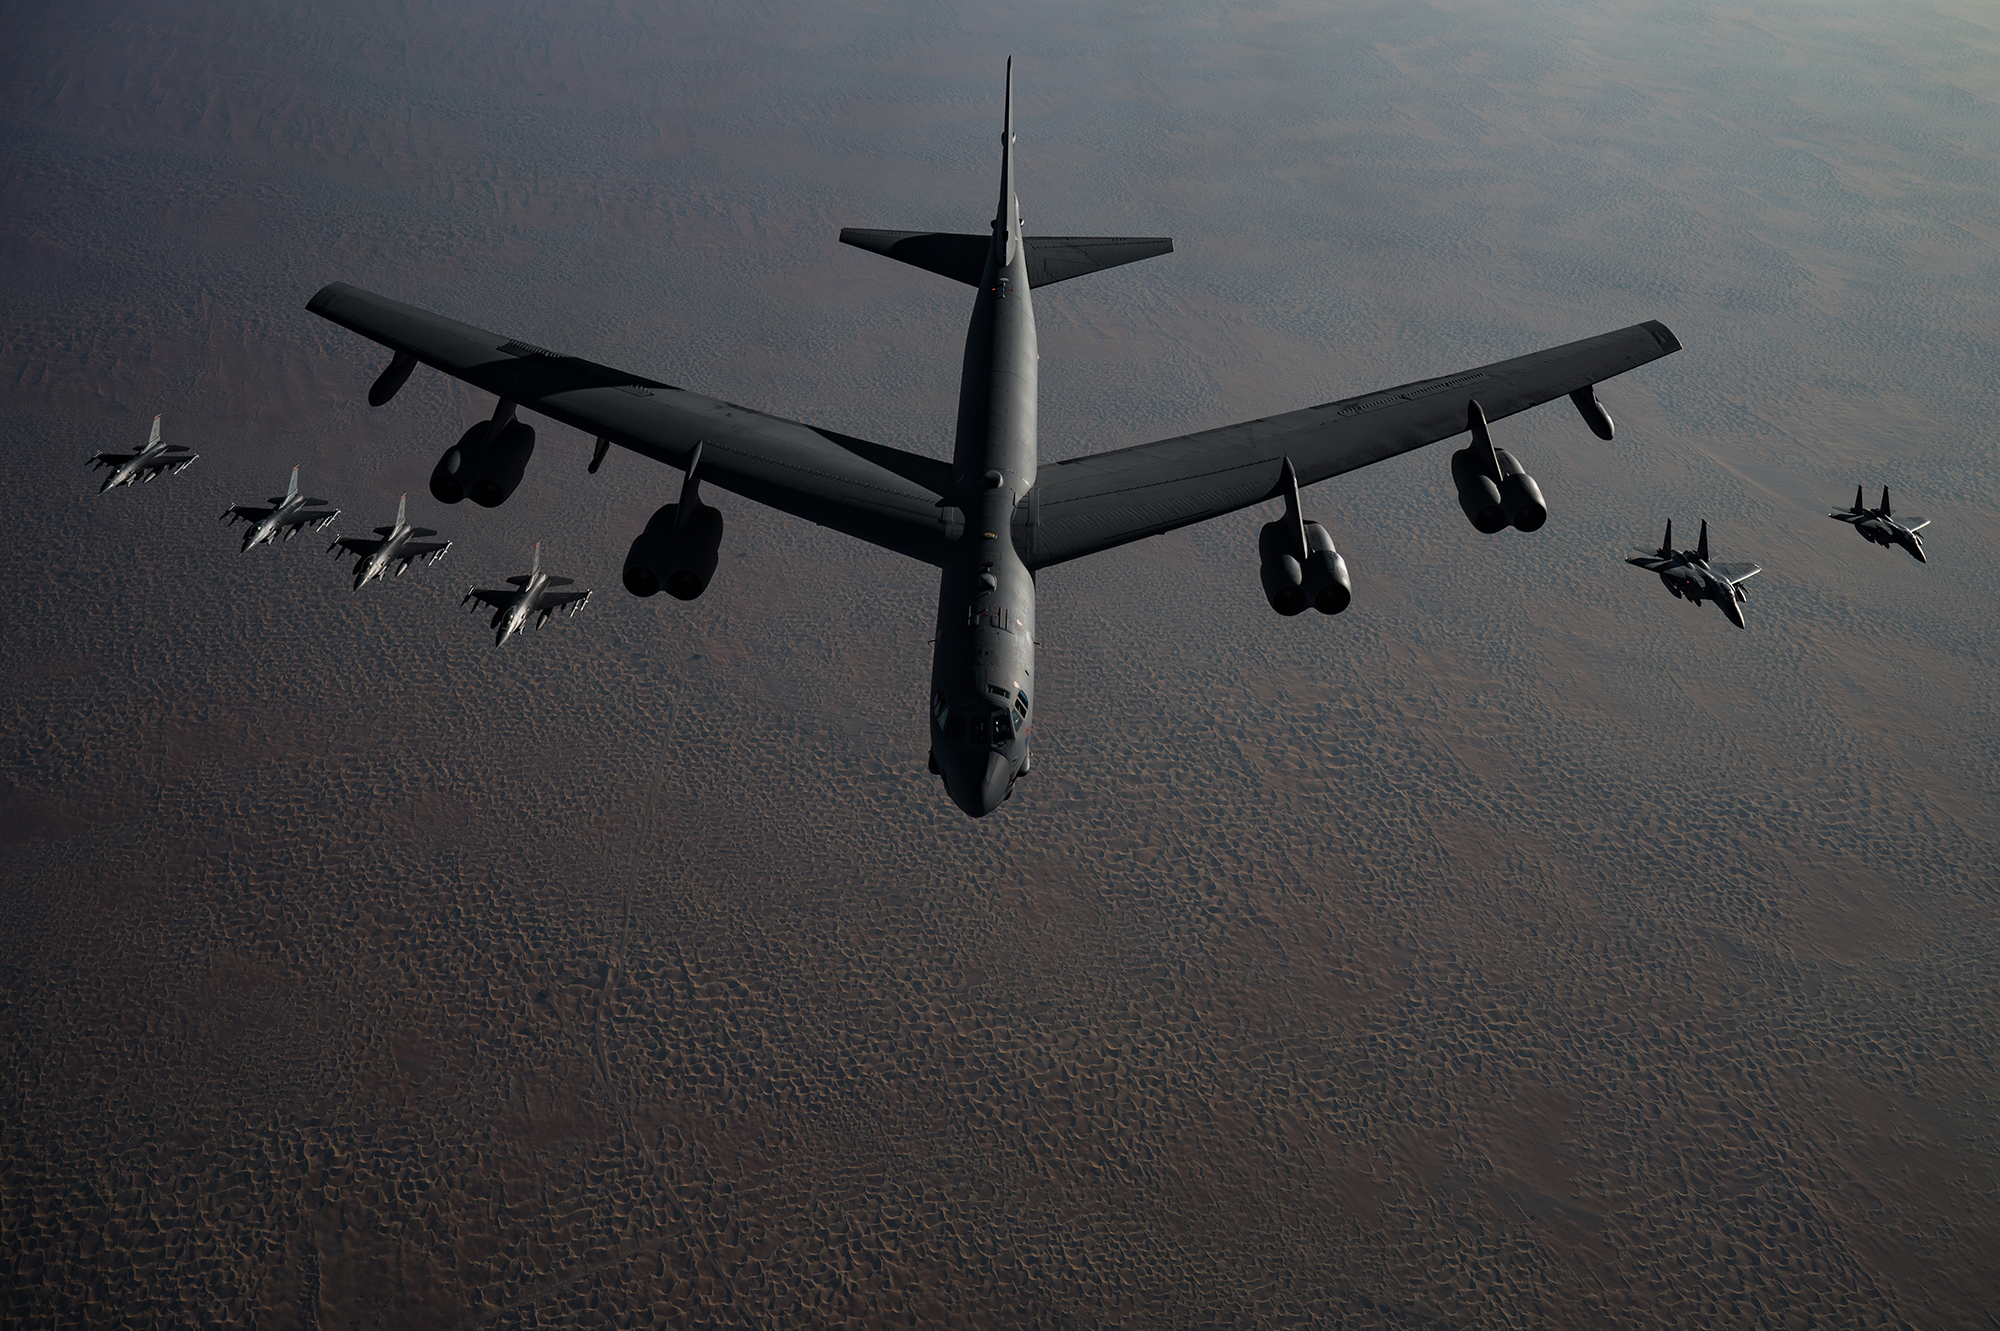 A B-52 Stratofortress flies in formation with F-16 Fighting Falcons and F-15E Strike Eagles during a Bomber Task Force mission over the U.S. Central Command area of responsibility, Nov. 21, 2020. (Staff Sgt. Sean Carnes/Air Force)